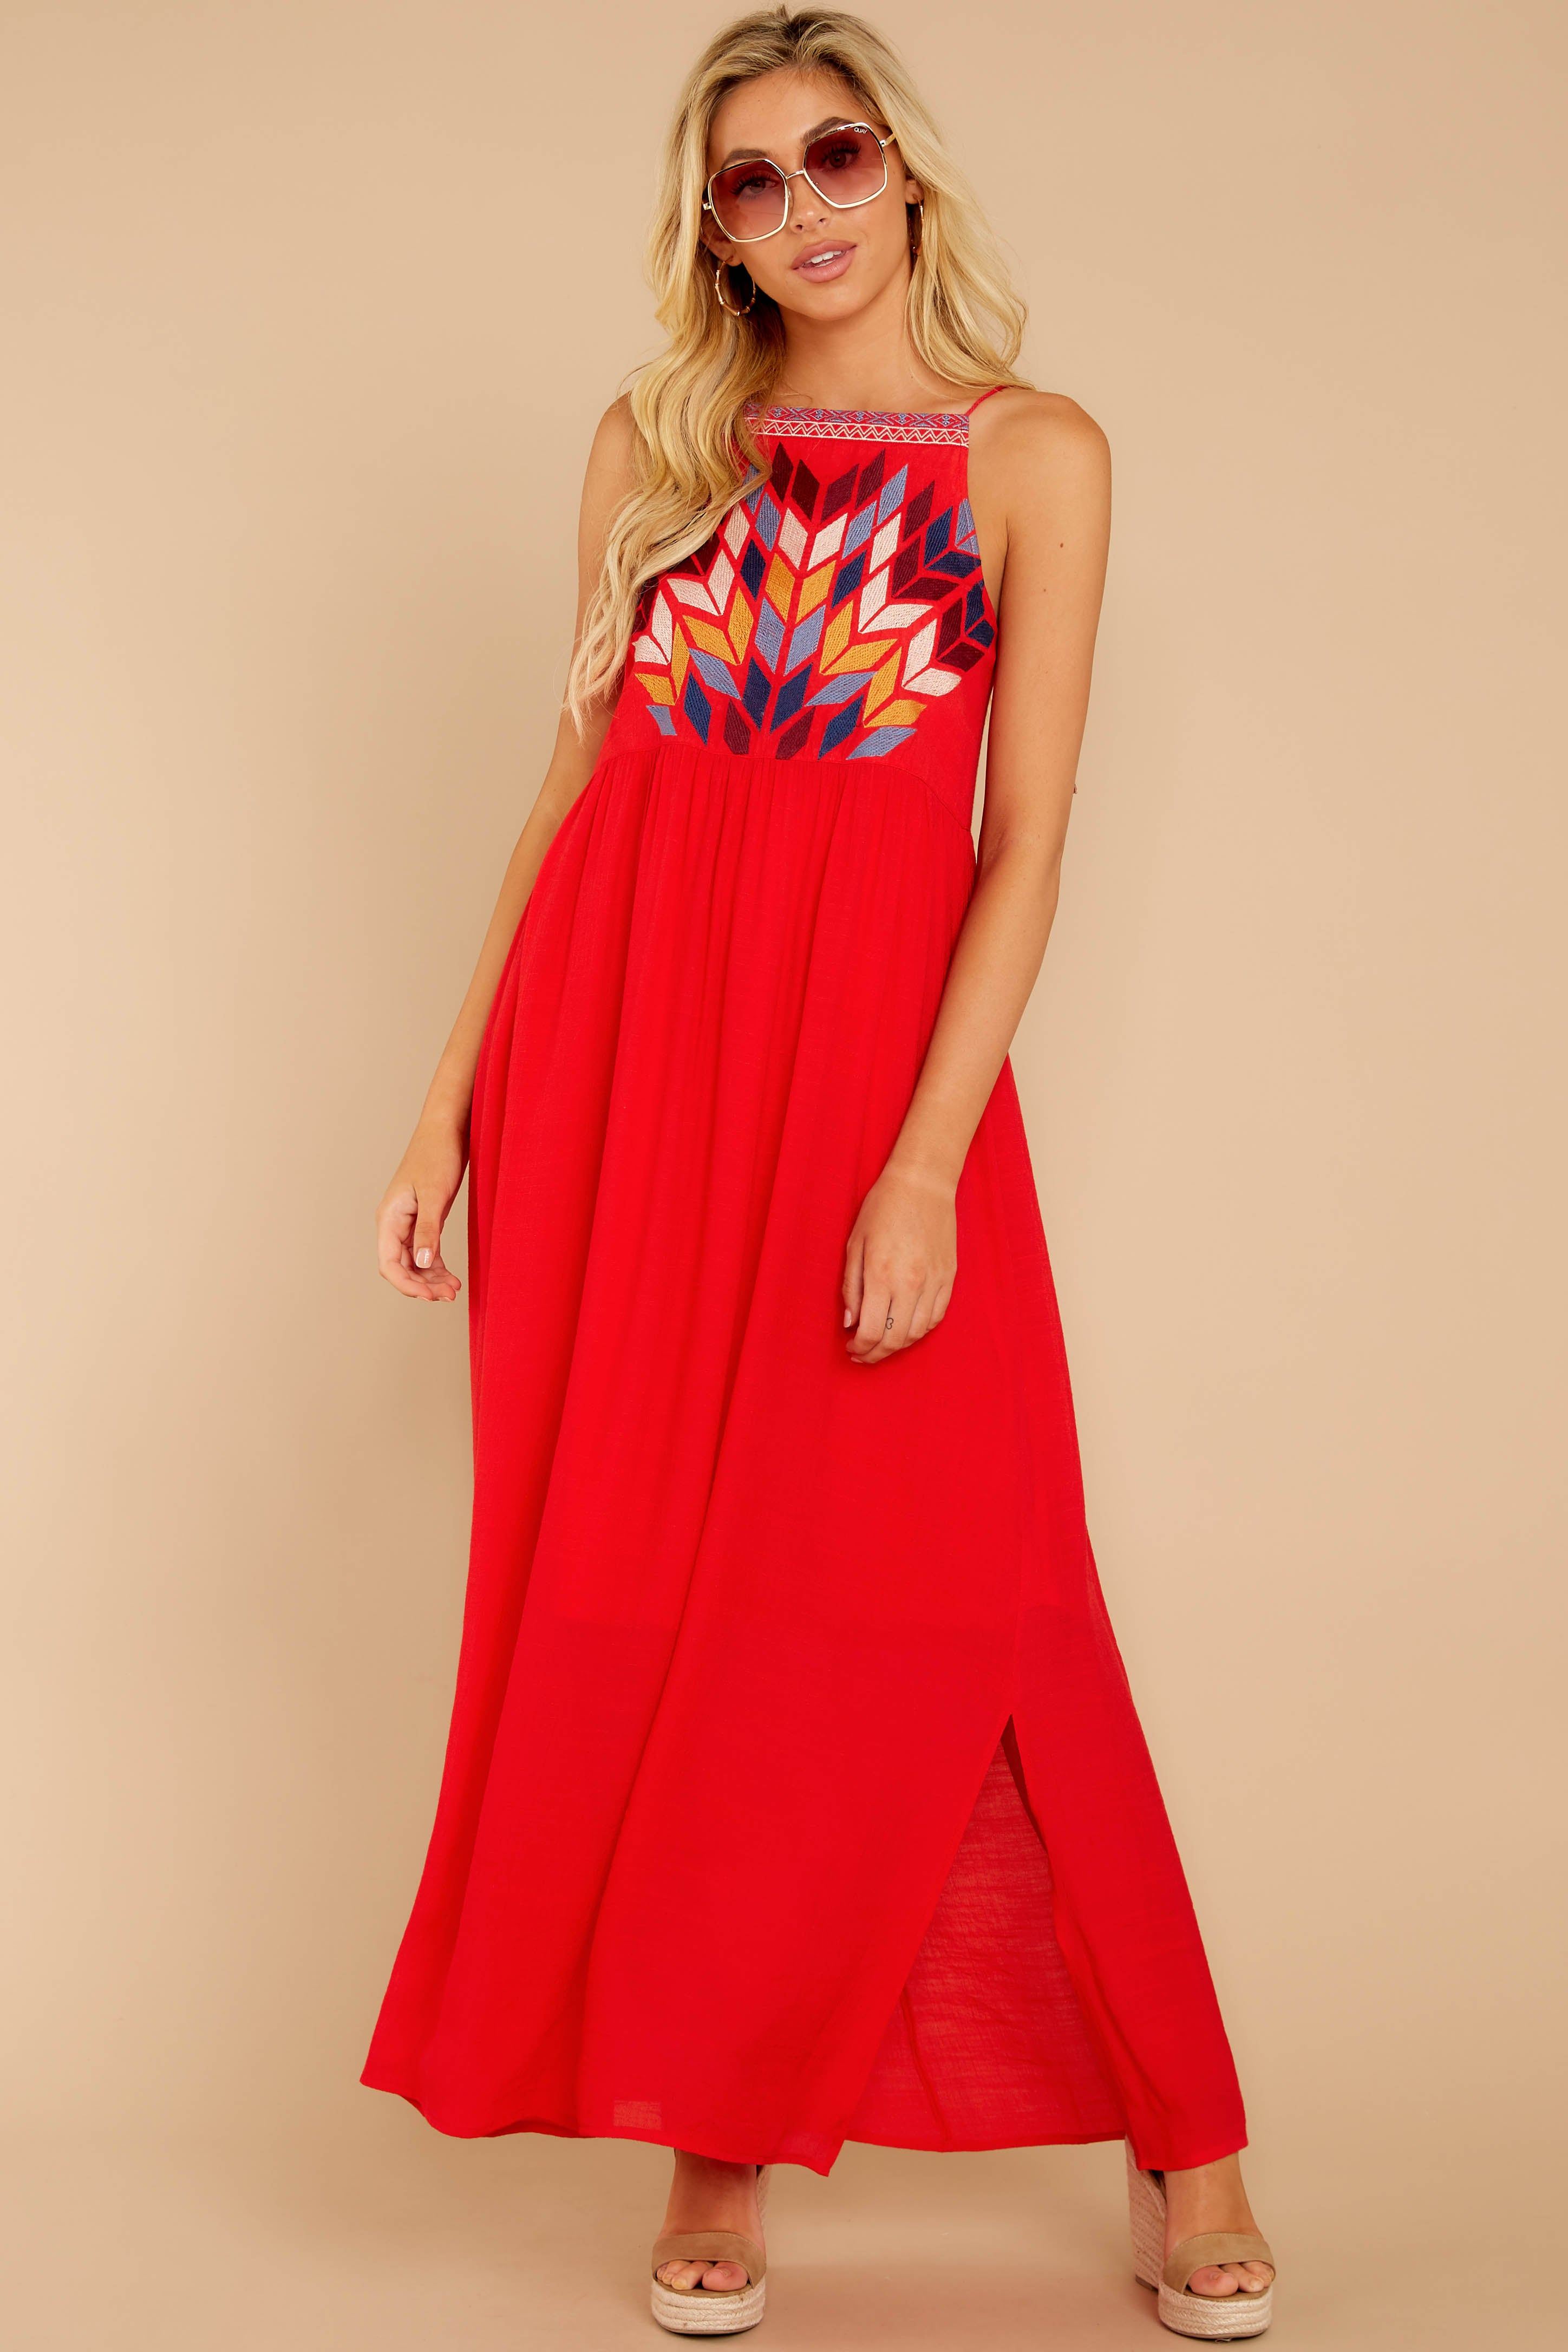 3 Kaleidoscope View Red Embroidered Maxi Dress at reddressboutique.com